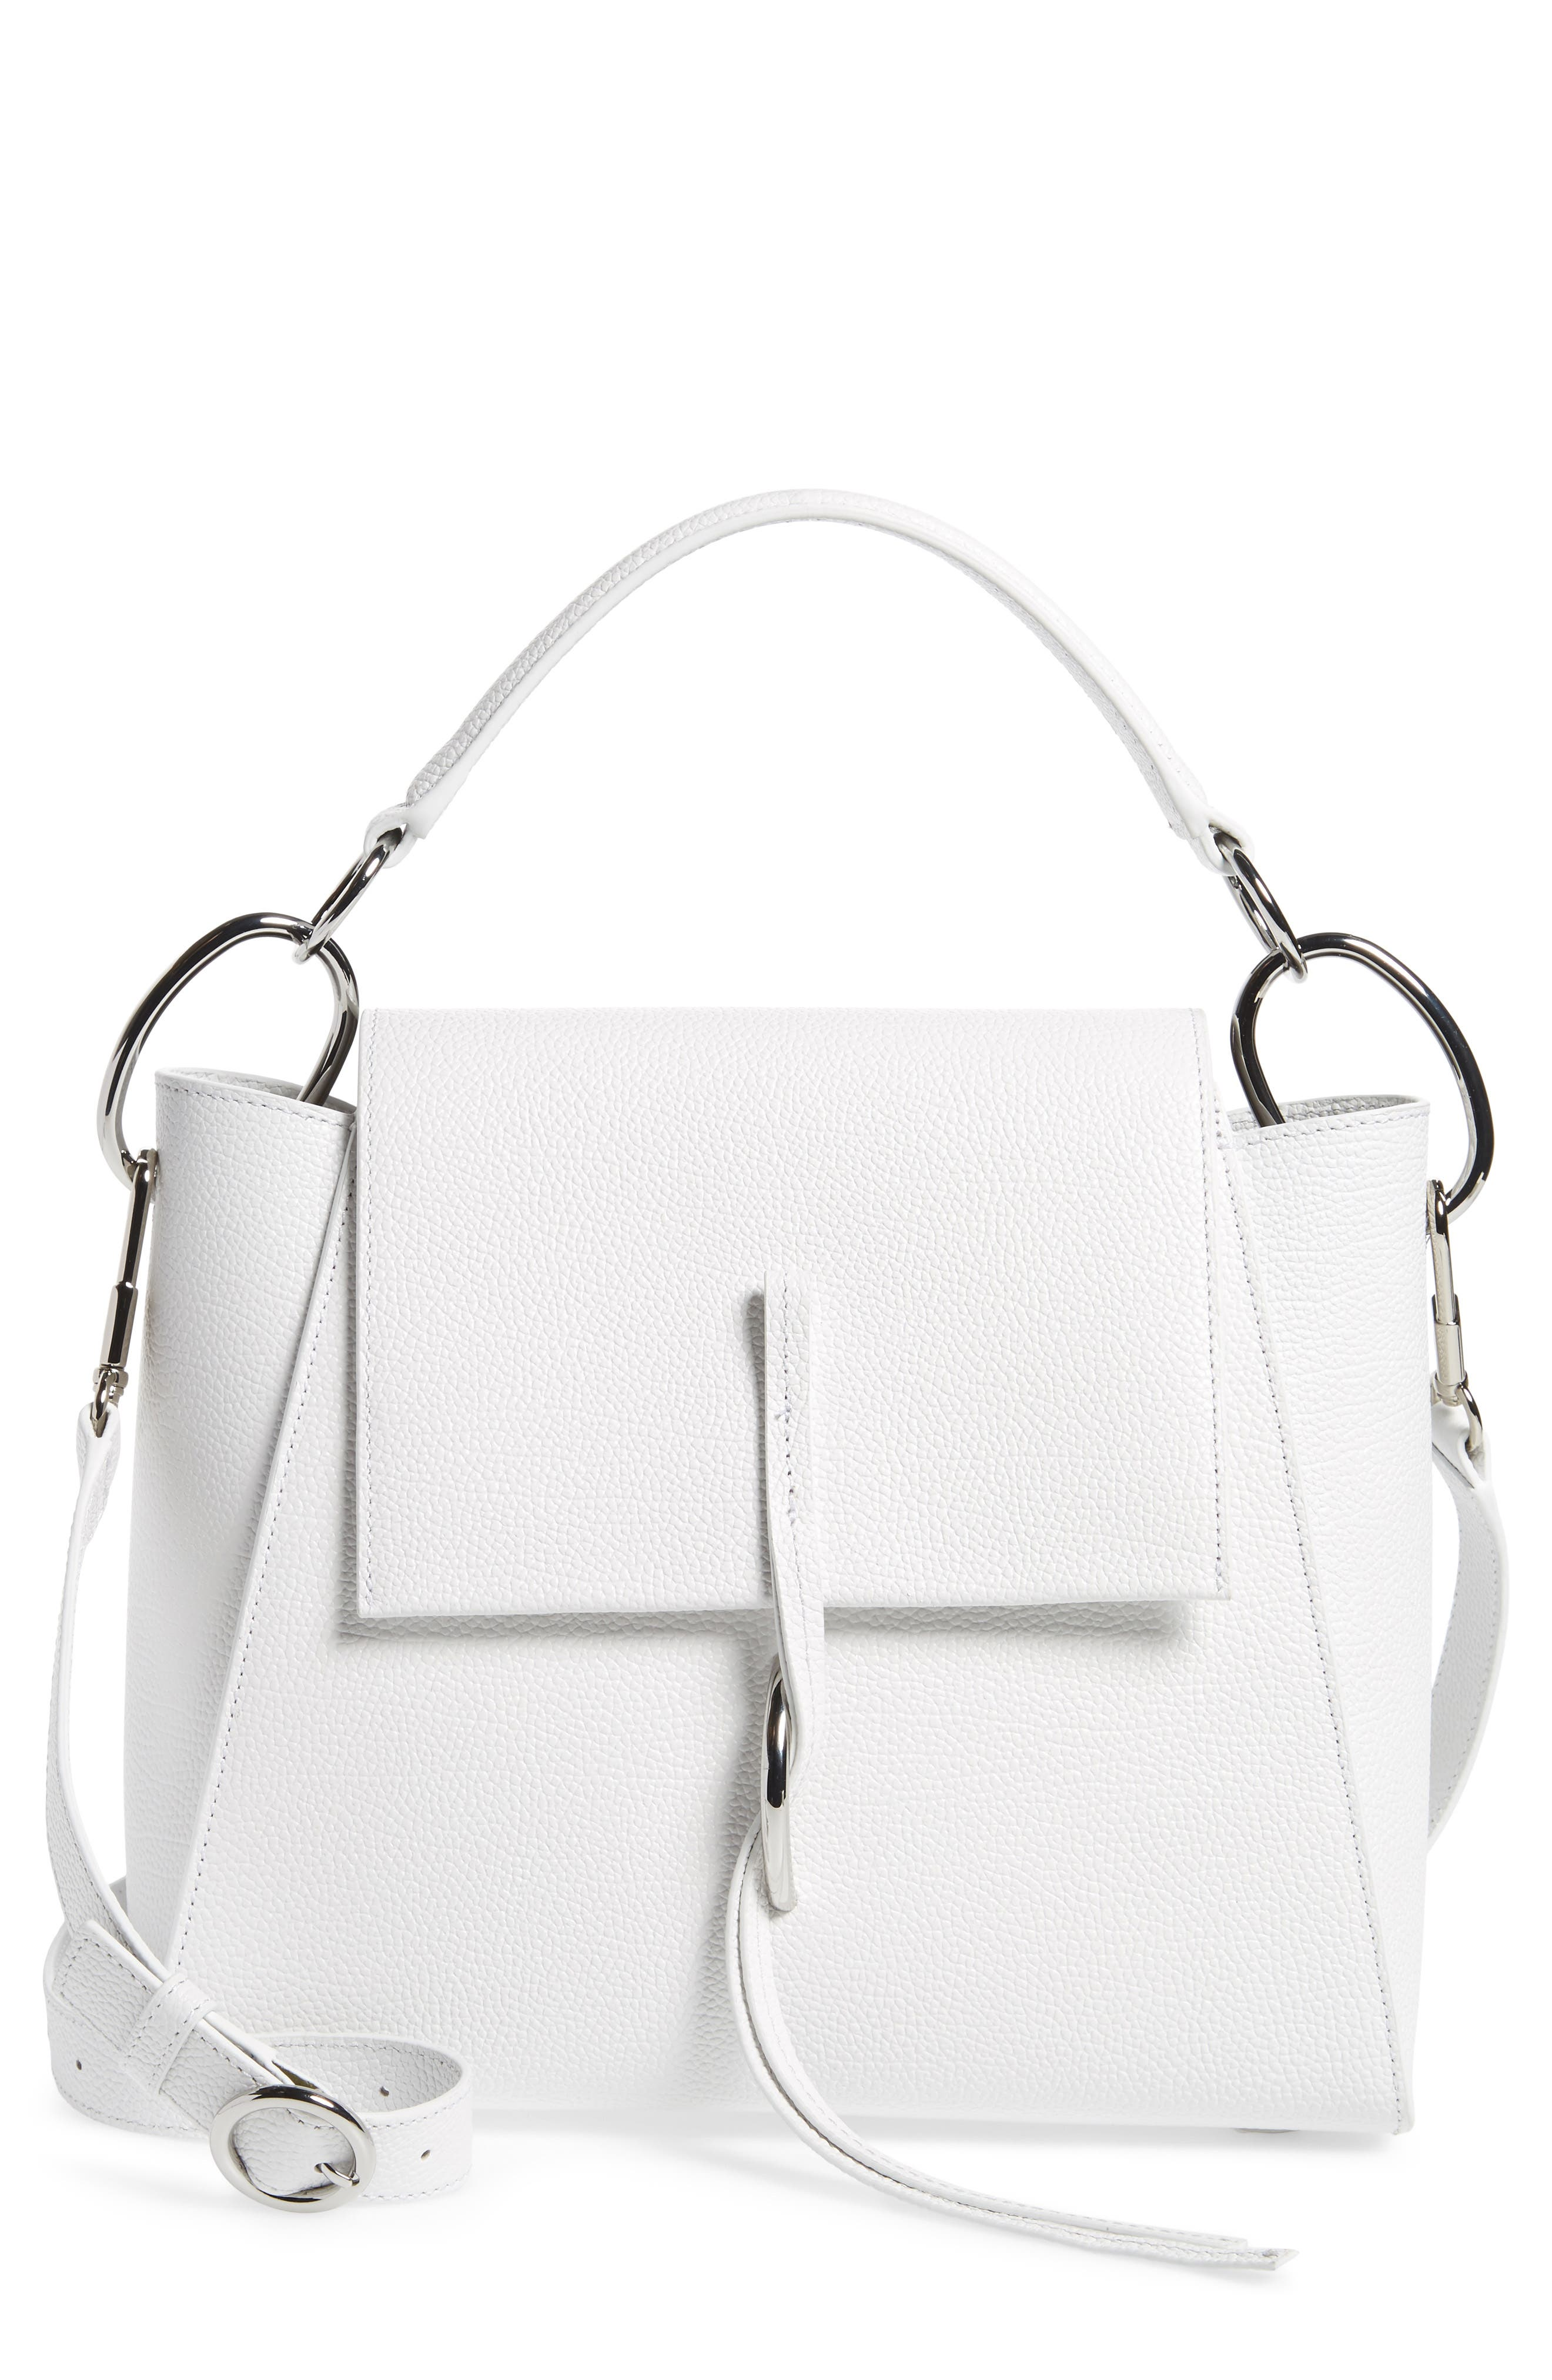 Leigh Top Handle Leather Satchel,                         Main,                         color, 100